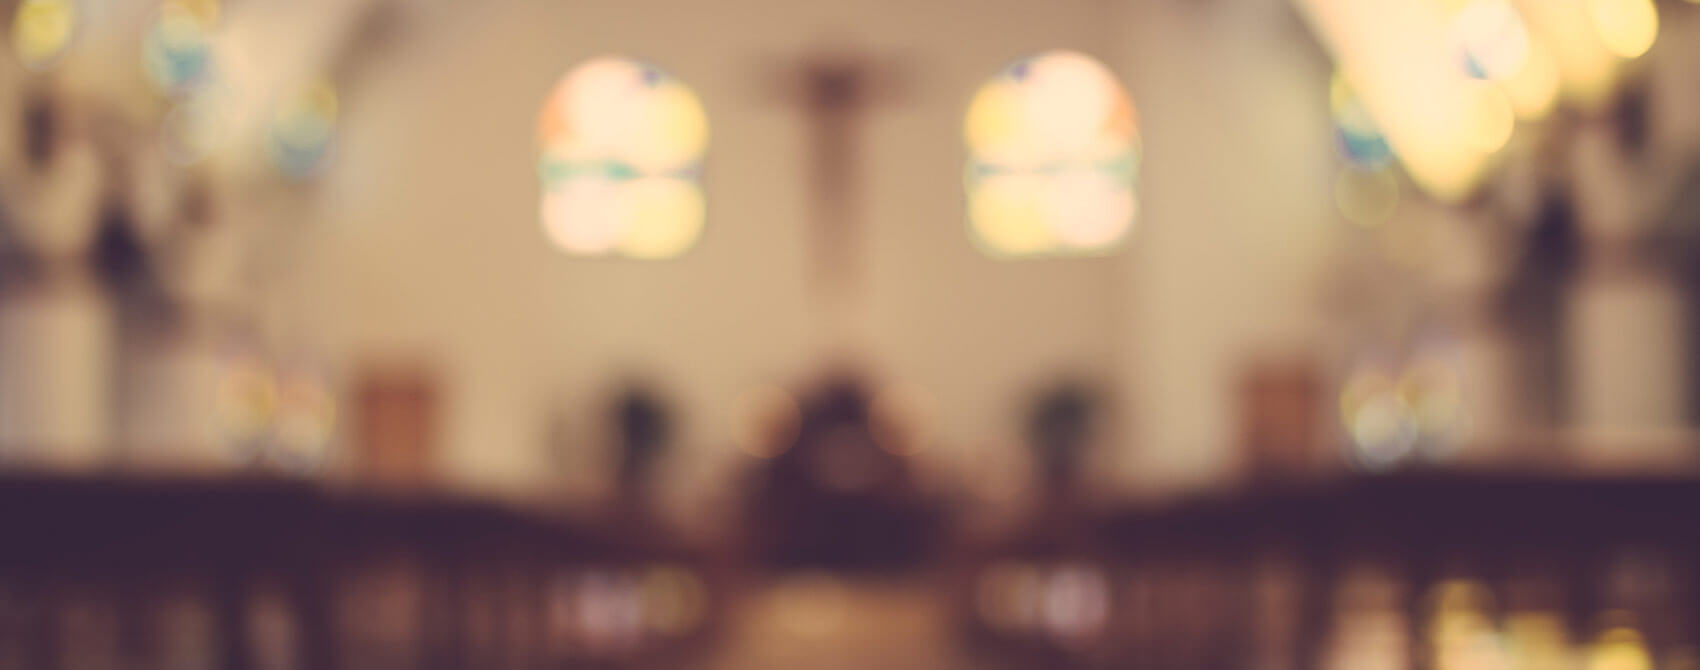 A Christian church interior out of focus.